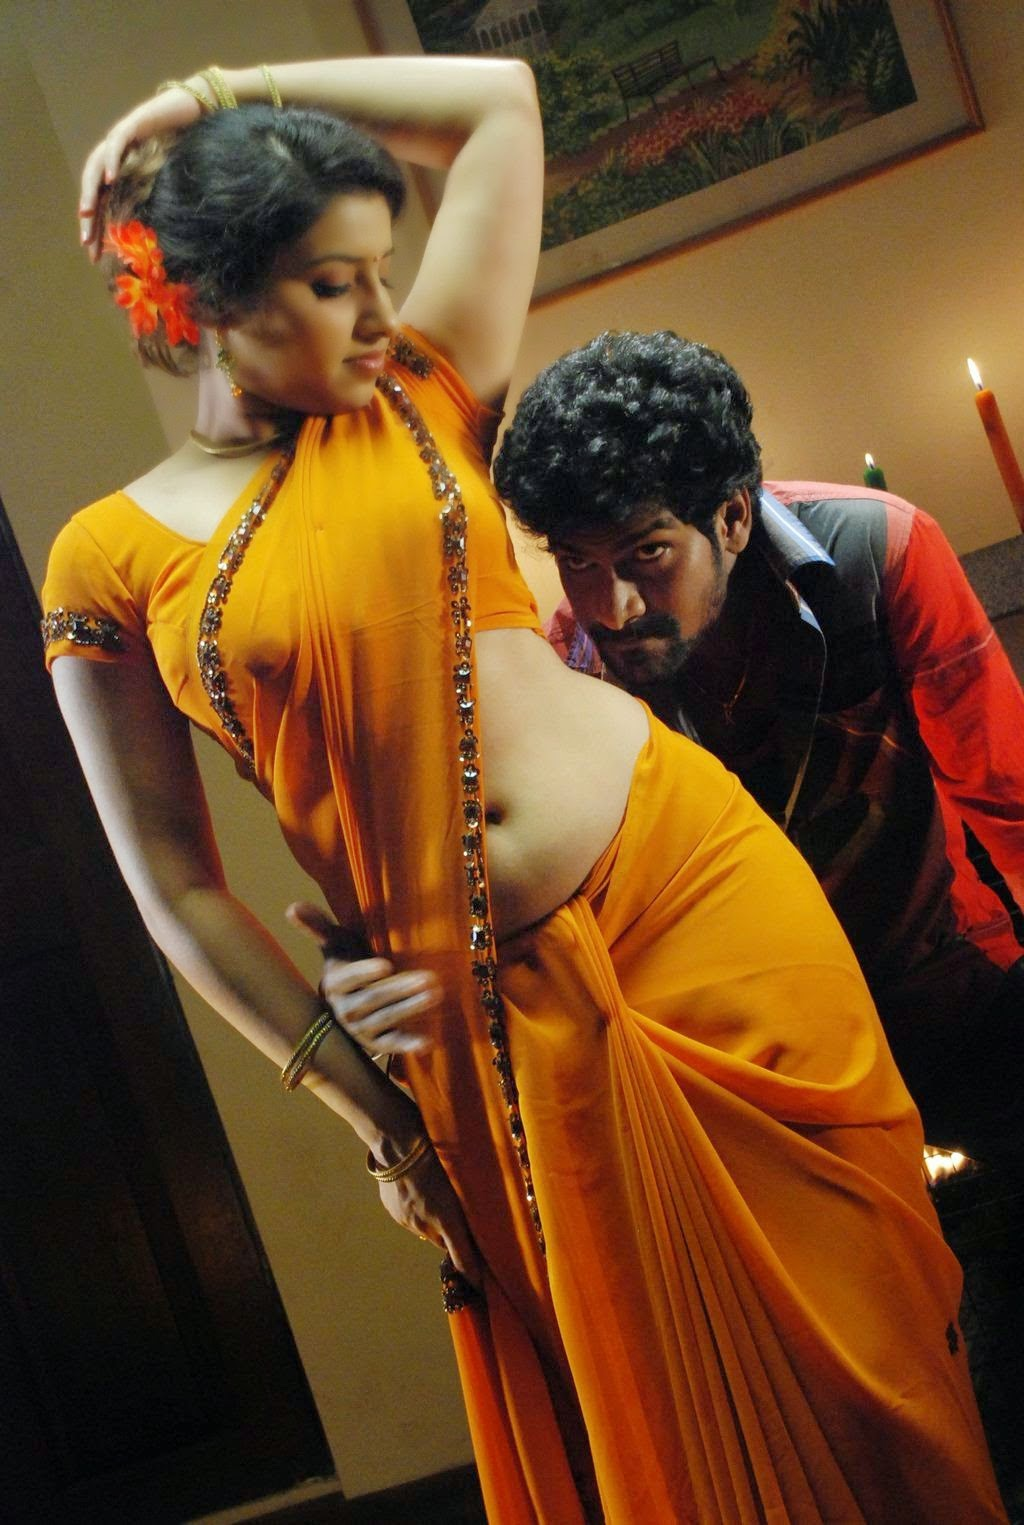 Actress navel kiss pictures Mom son INCEST in INDIA : a true story of sushma darling